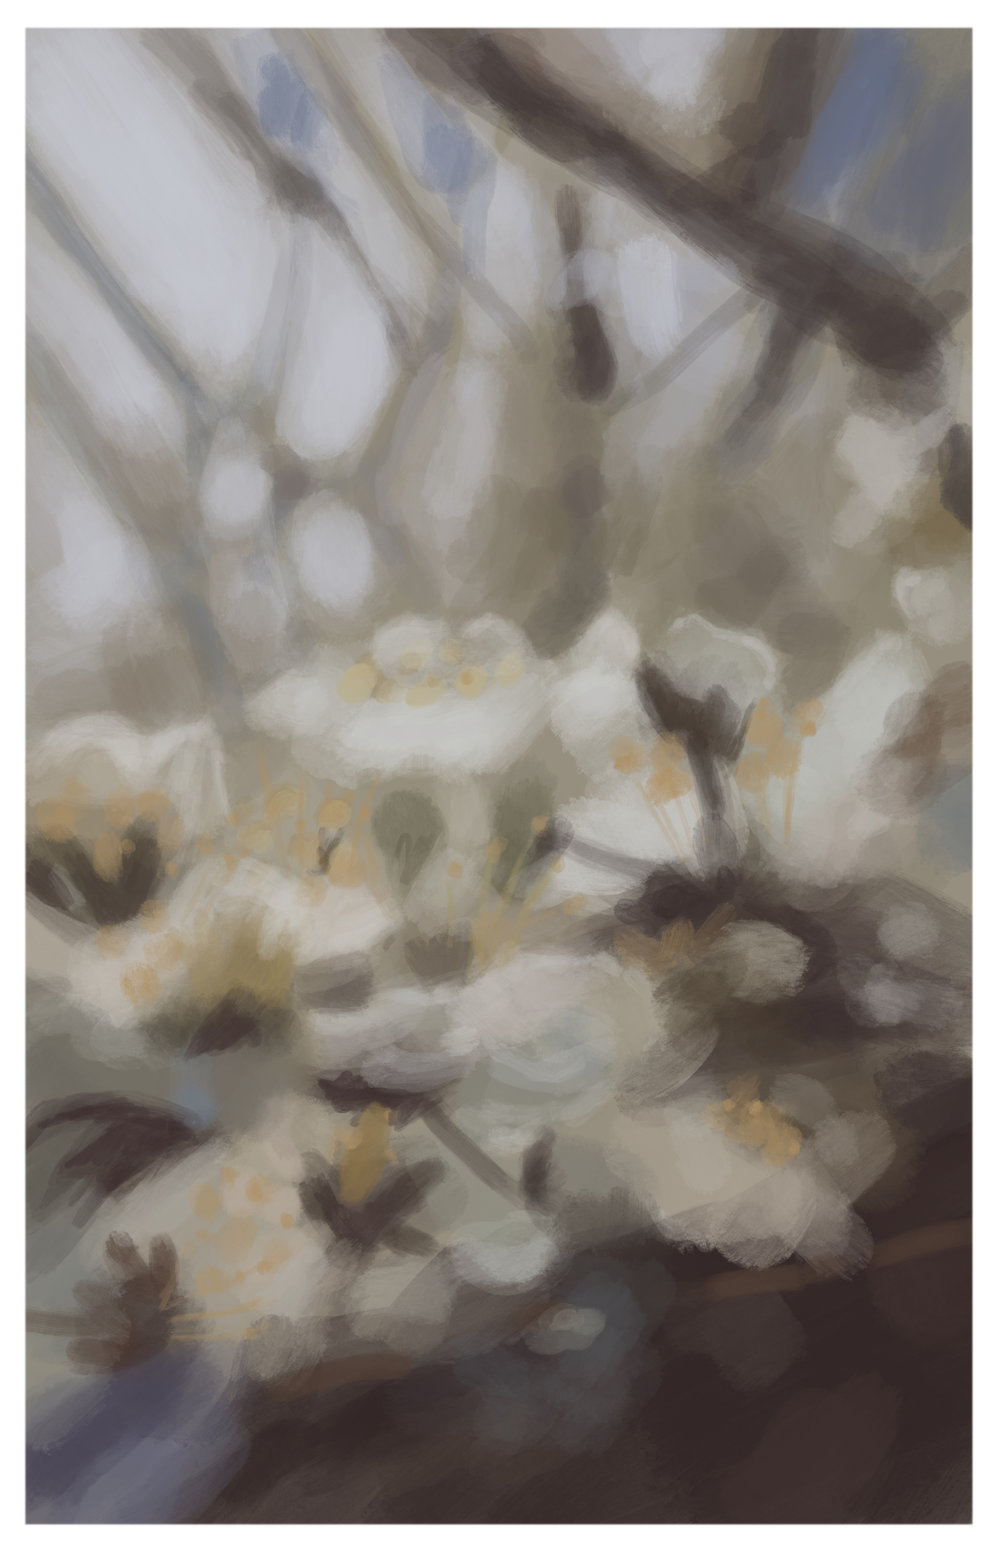 #7_-_White_Blossoms.jpg